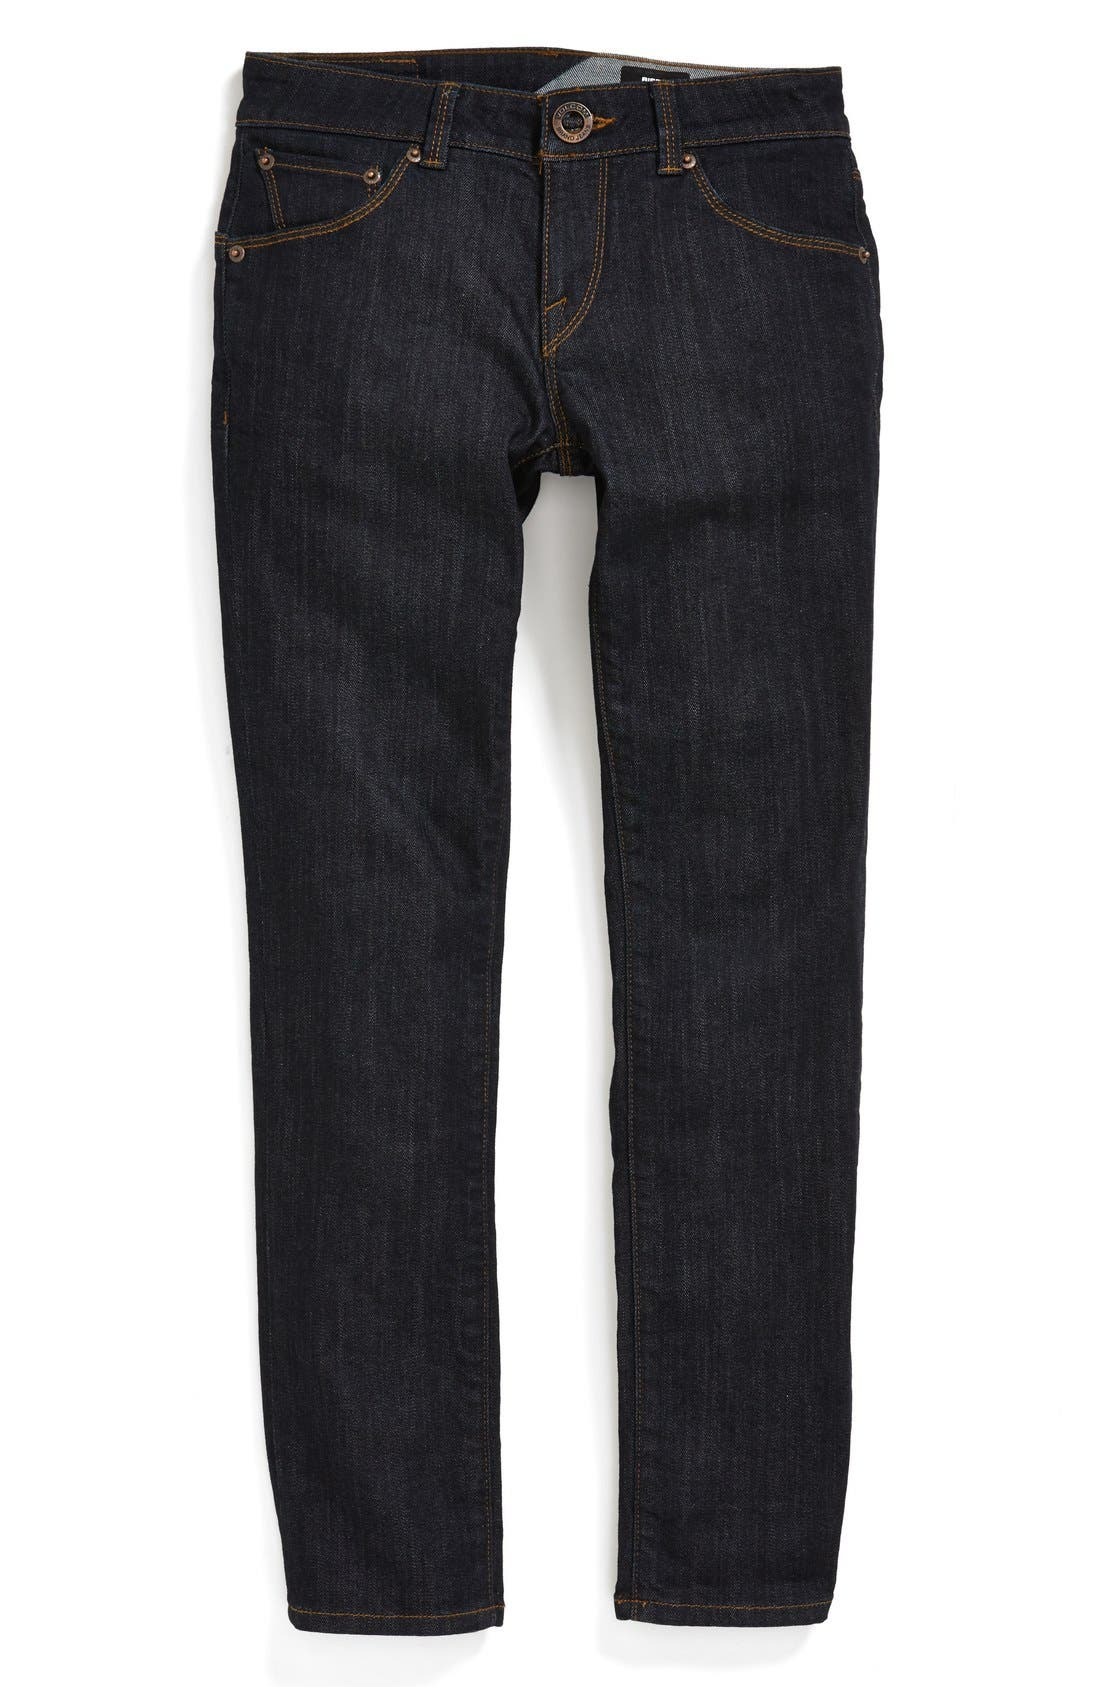 Alternate Image 1 Selected - Volcom 'Riser' Skinny Straight Leg Jeans (Big Boys)